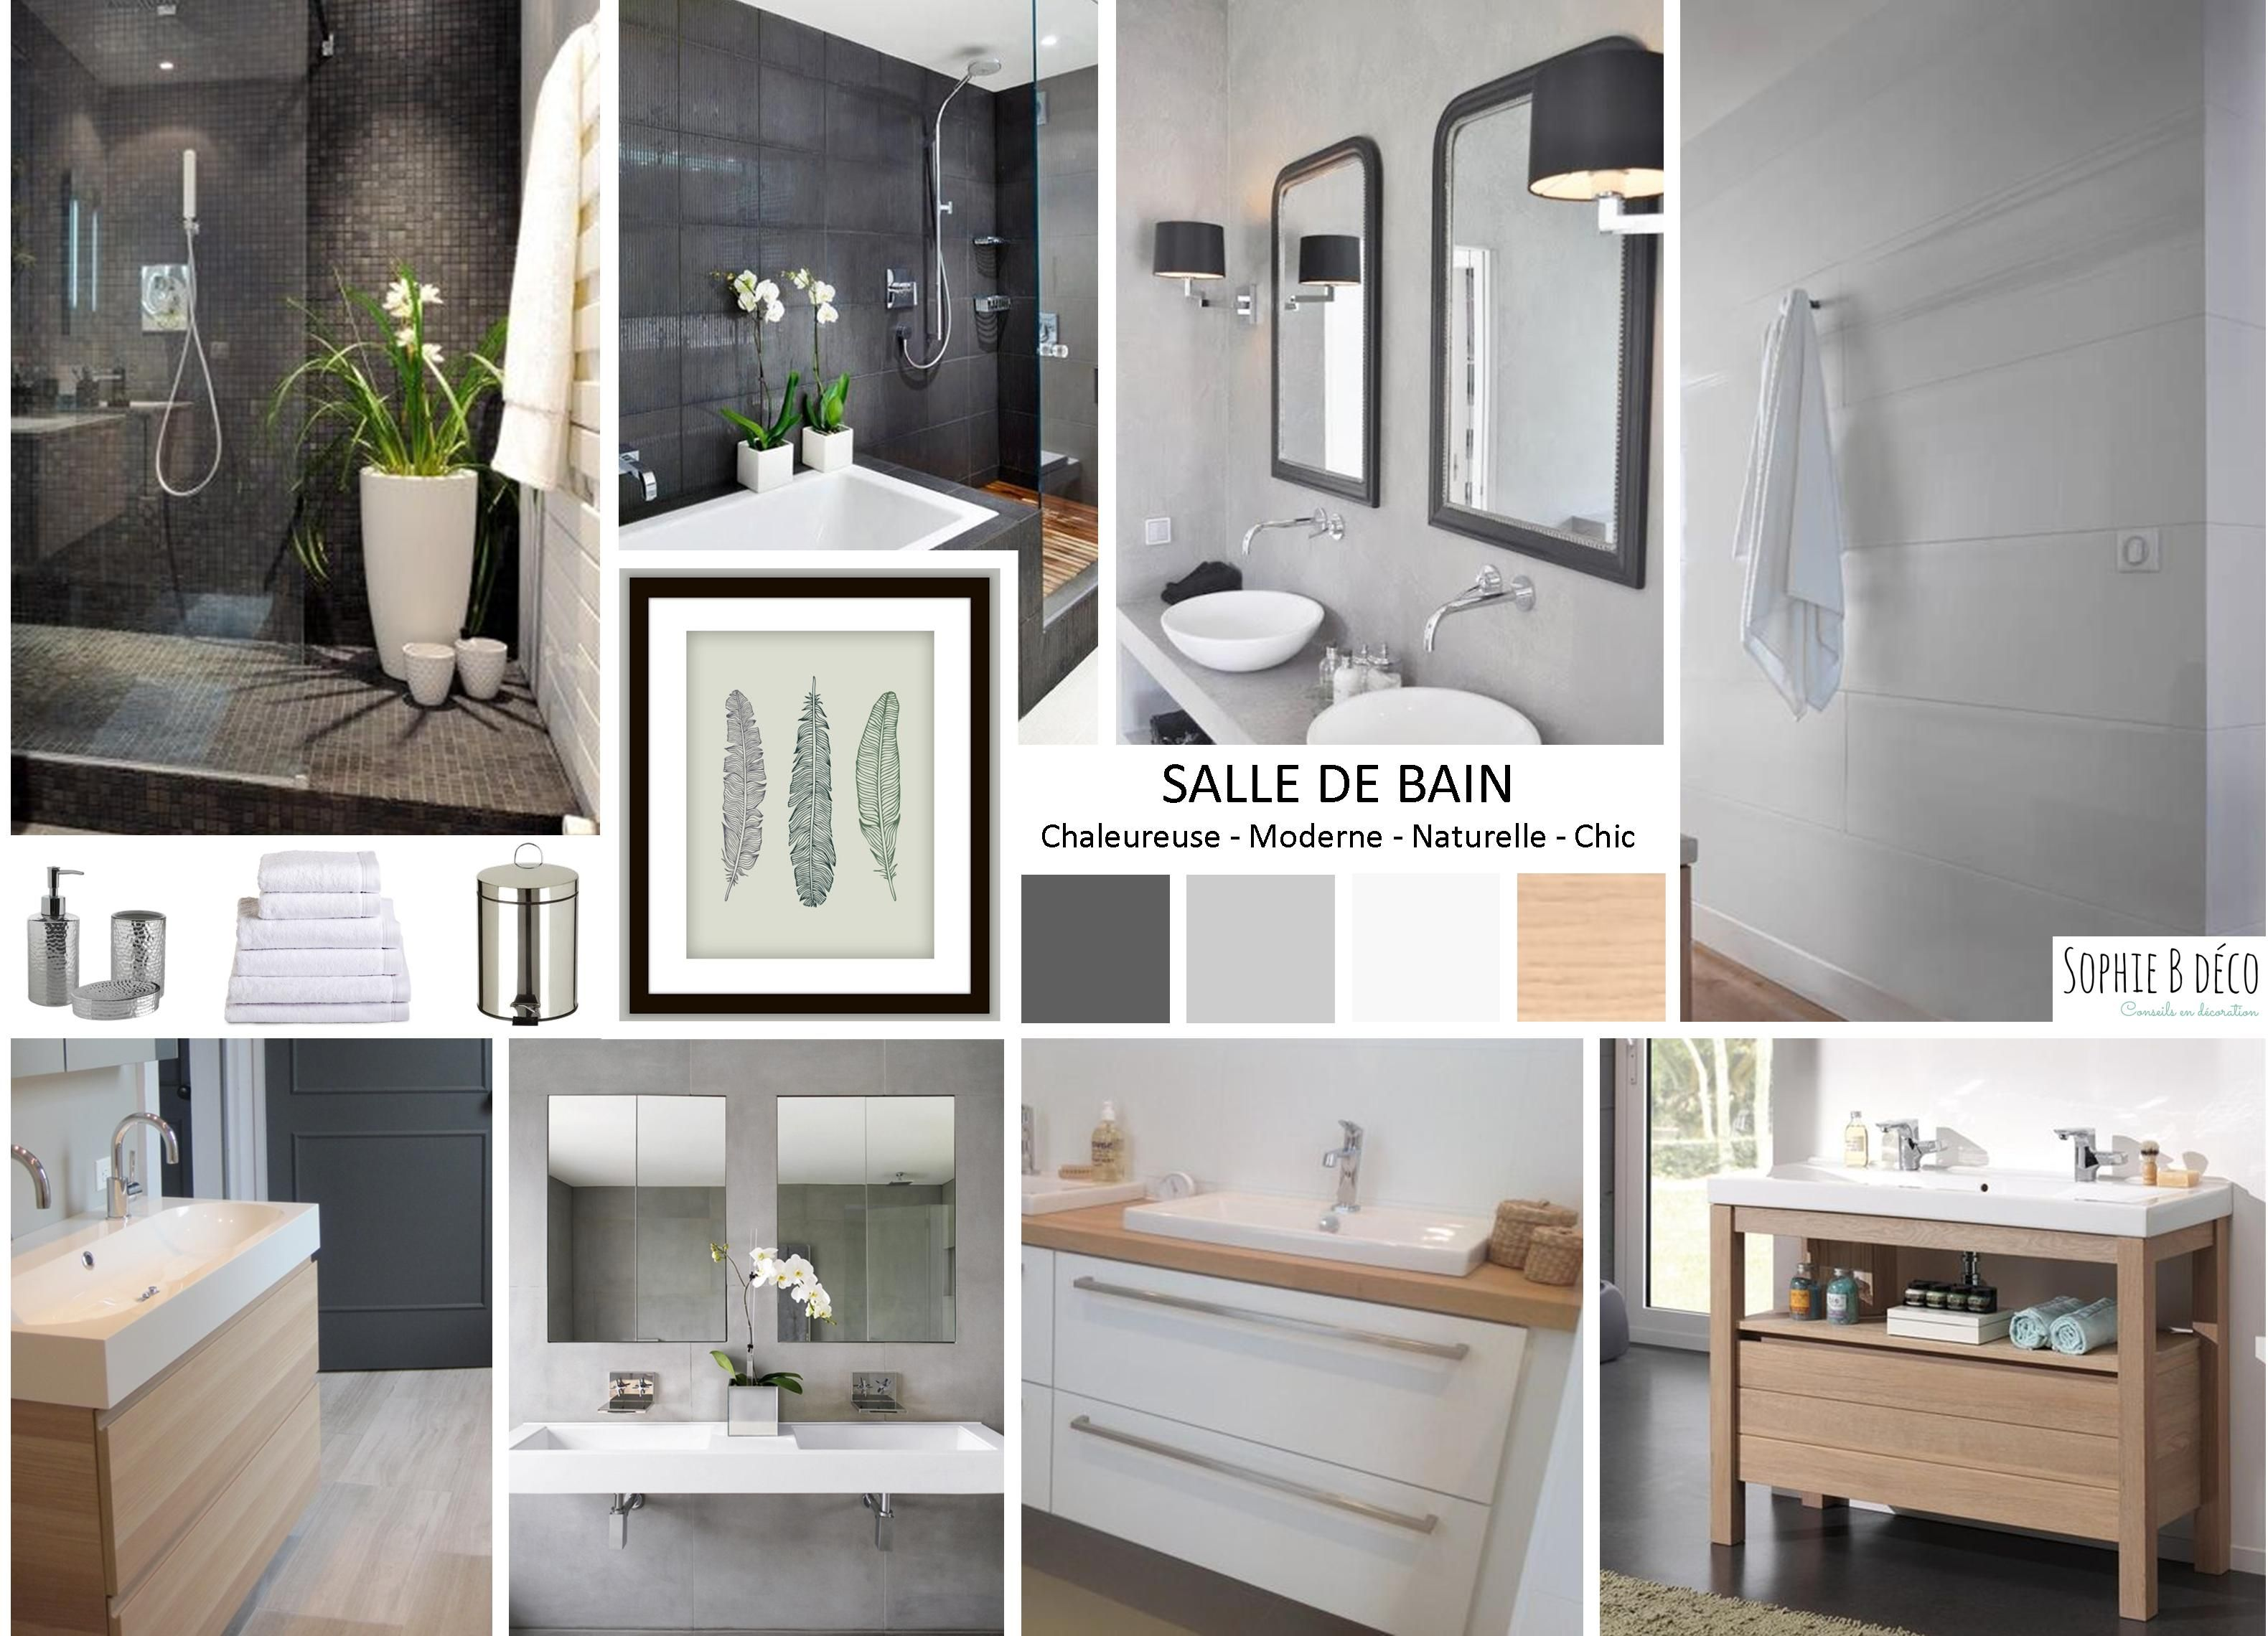 planche tendance salle de bain en gris blanc et bois. Black Bedroom Furniture Sets. Home Design Ideas